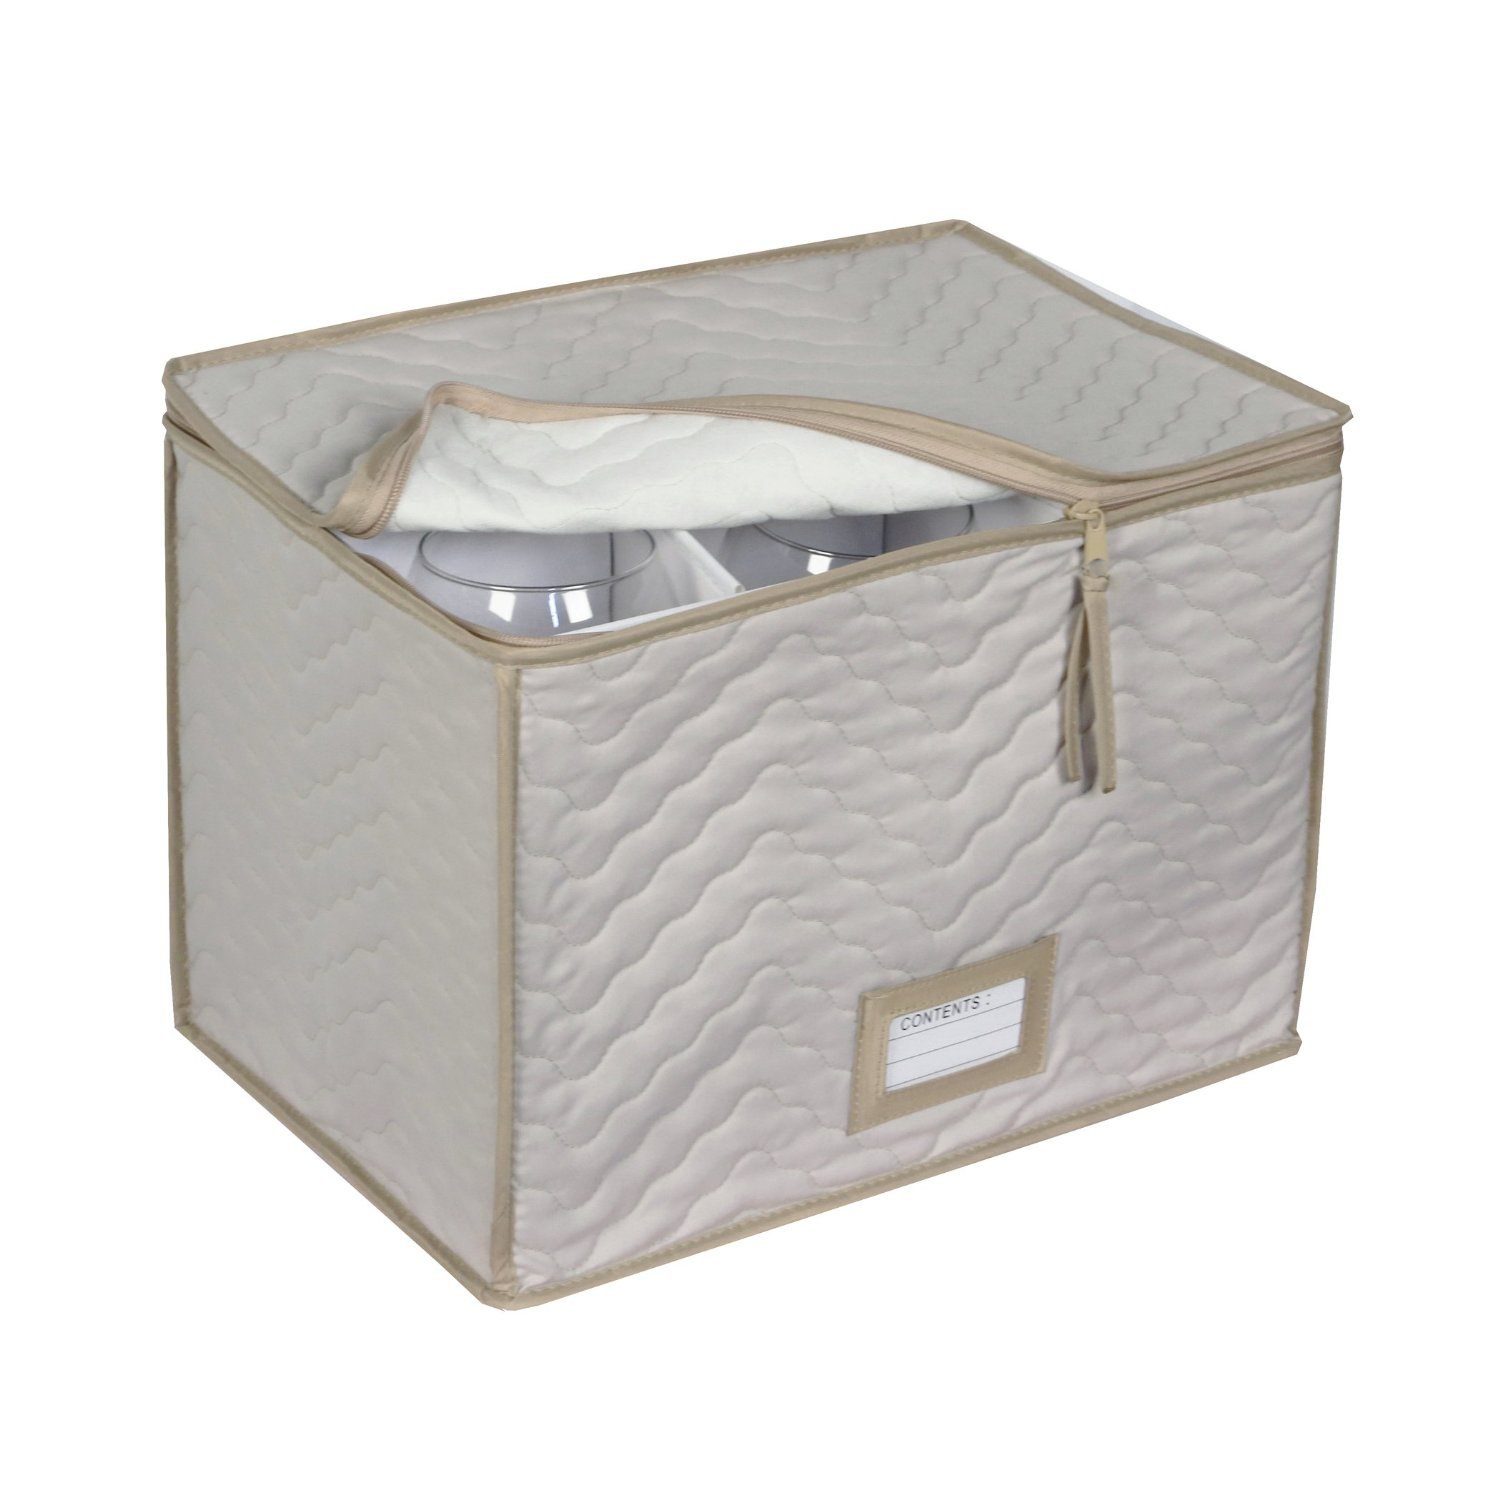 Water resistant Soft Quilted Microfiber Storage Chest, Holds 6 Wine Goblets, Color Mocha by